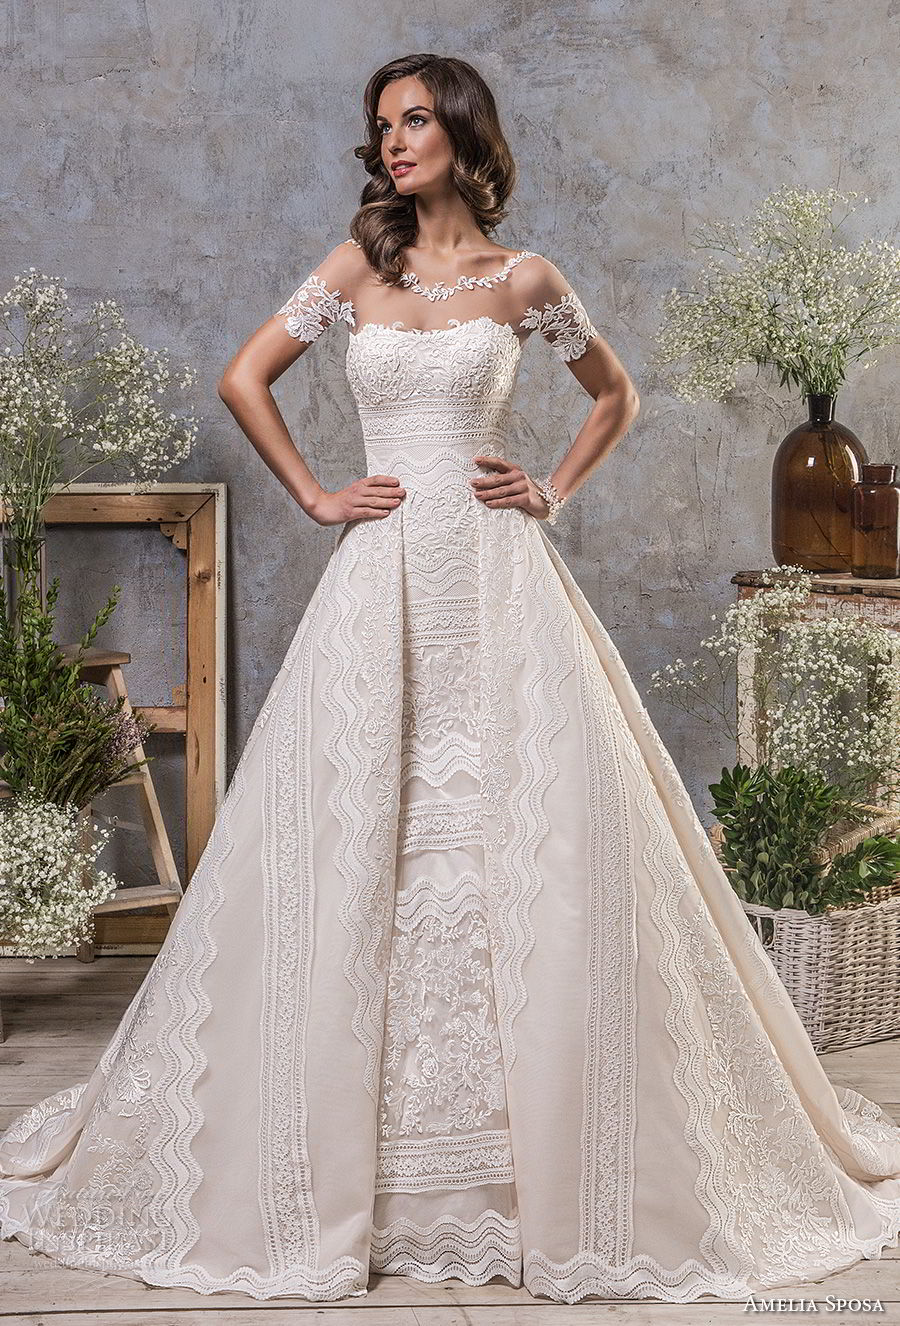 amelia sposa fall 2018 bridal short sleeves illusion boat neck semi sweetheart neckline full embellishment elegant trumpet wedding dress a line overskirt keyhole back sweep train (3) mv